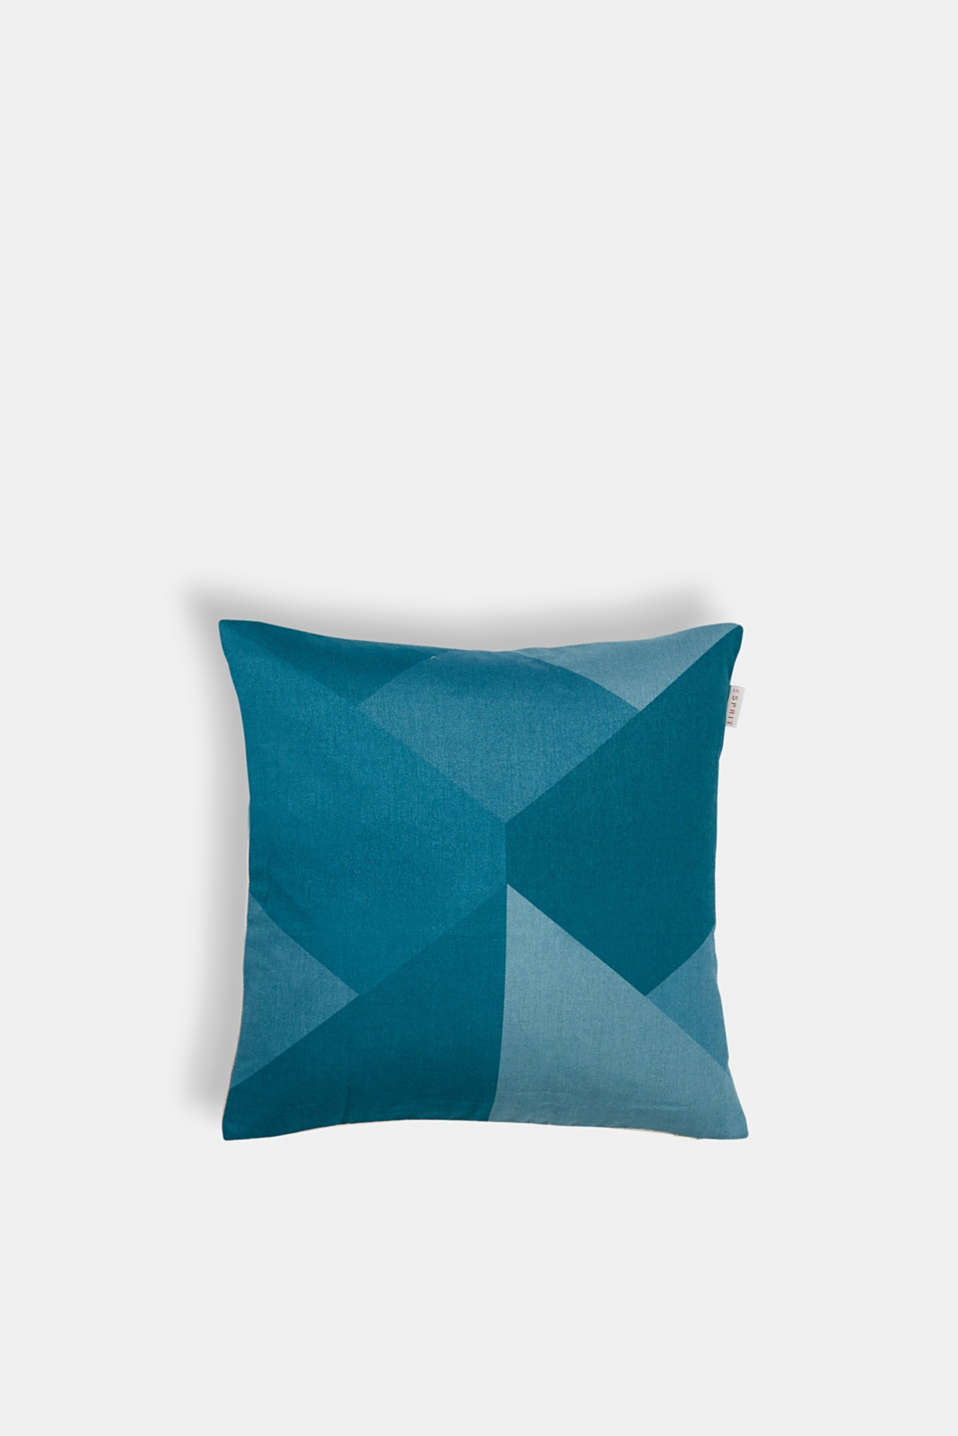 Esprit - Cushion cover with a graphic pattern